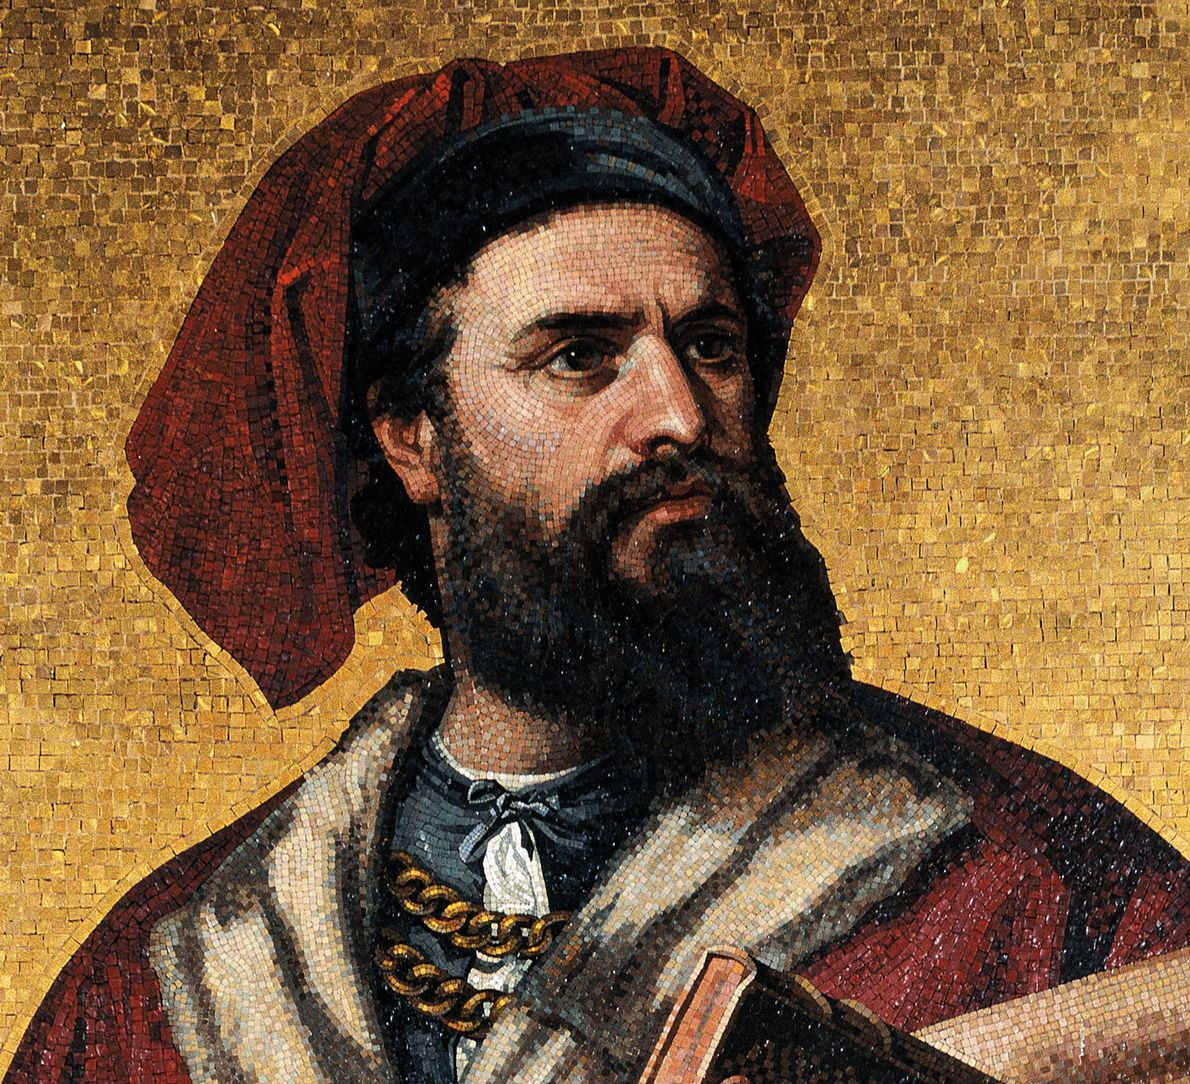 Marco Polo's odyssey spawned one of the world's first best sellers